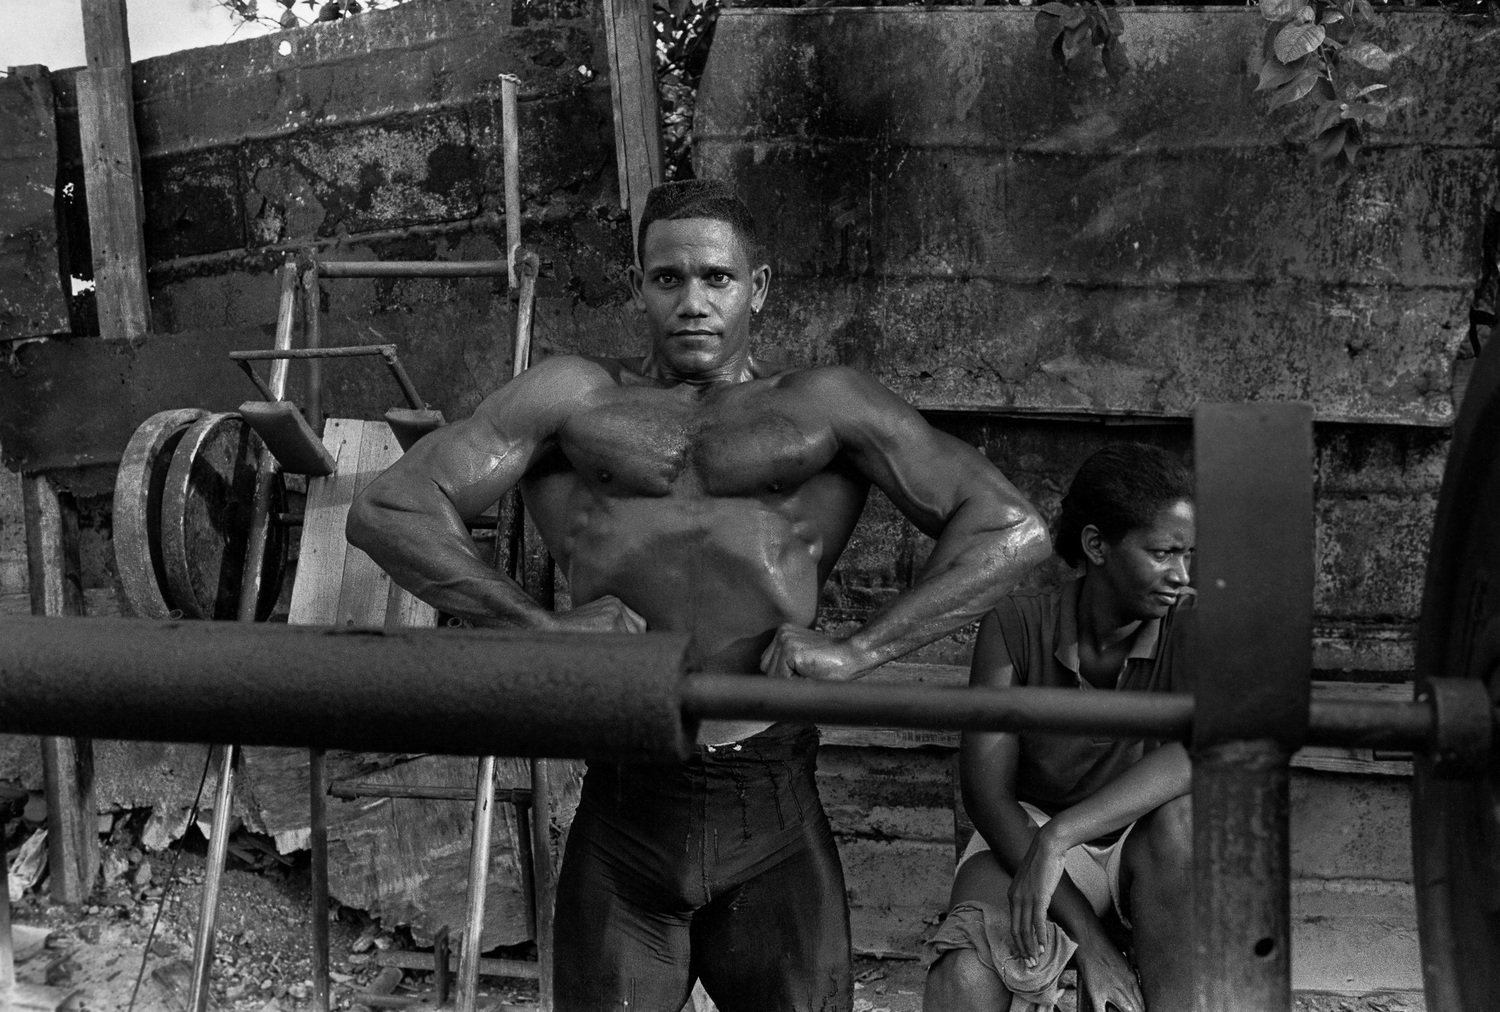 black and white street photography by Bela Doka in Cuba during the Periodo Especial, in Havana 1994 1998